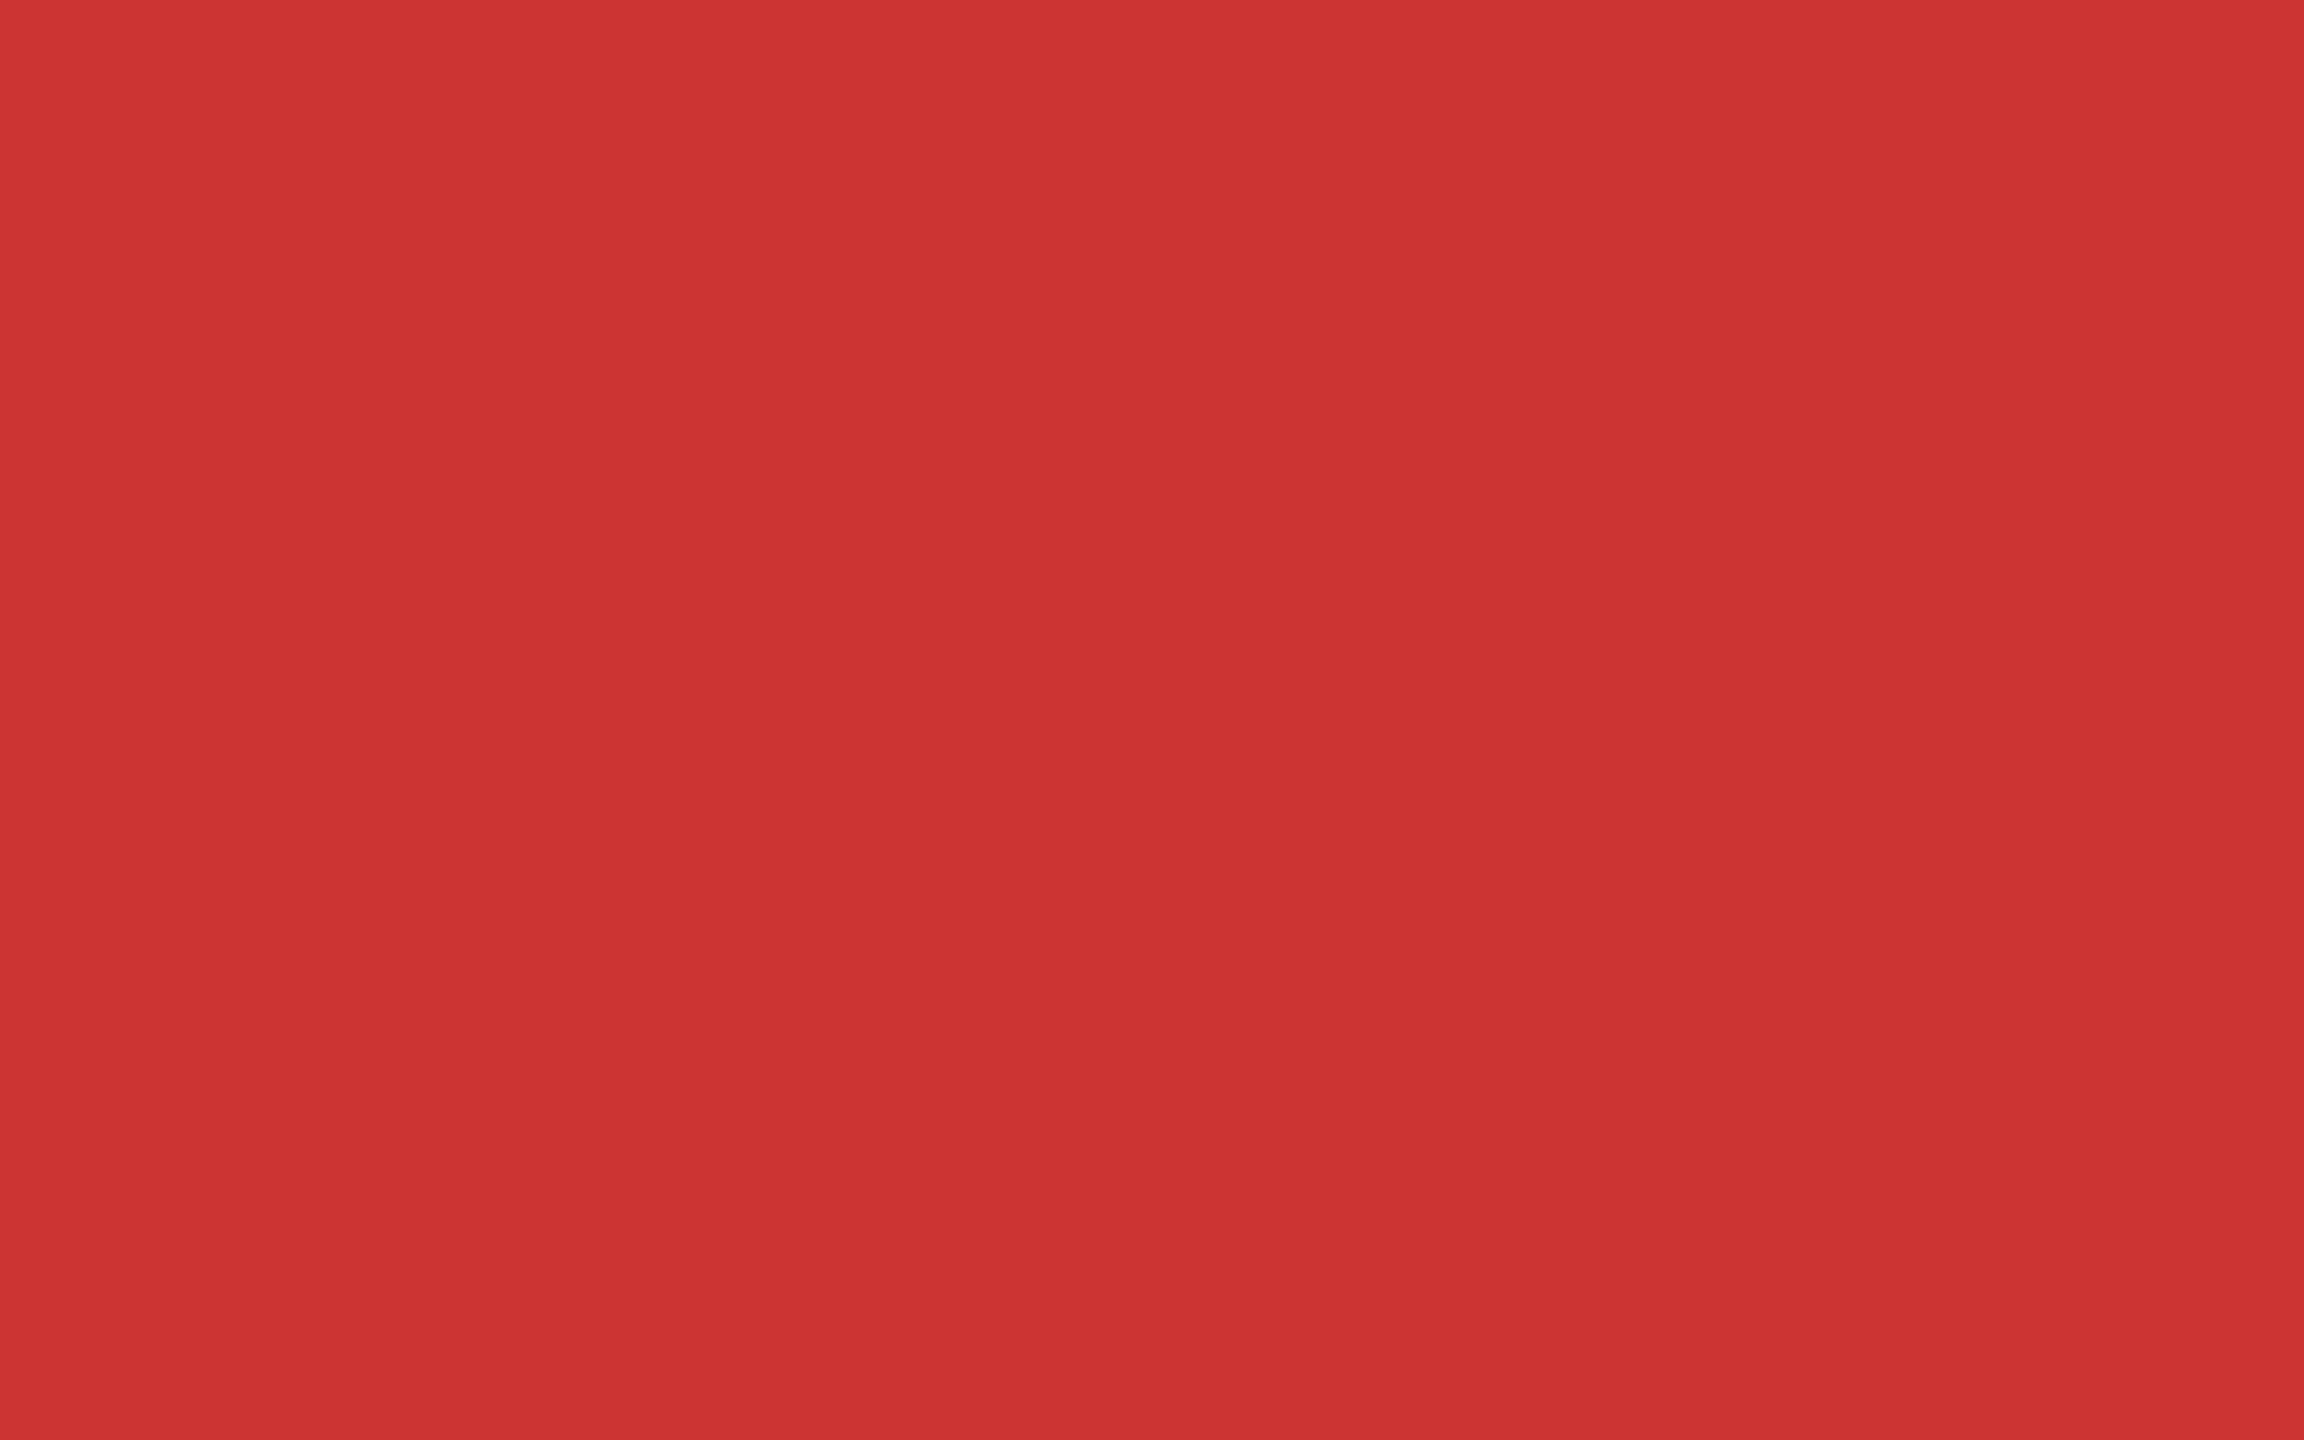 2304x1440 Persian Red Solid Color Background